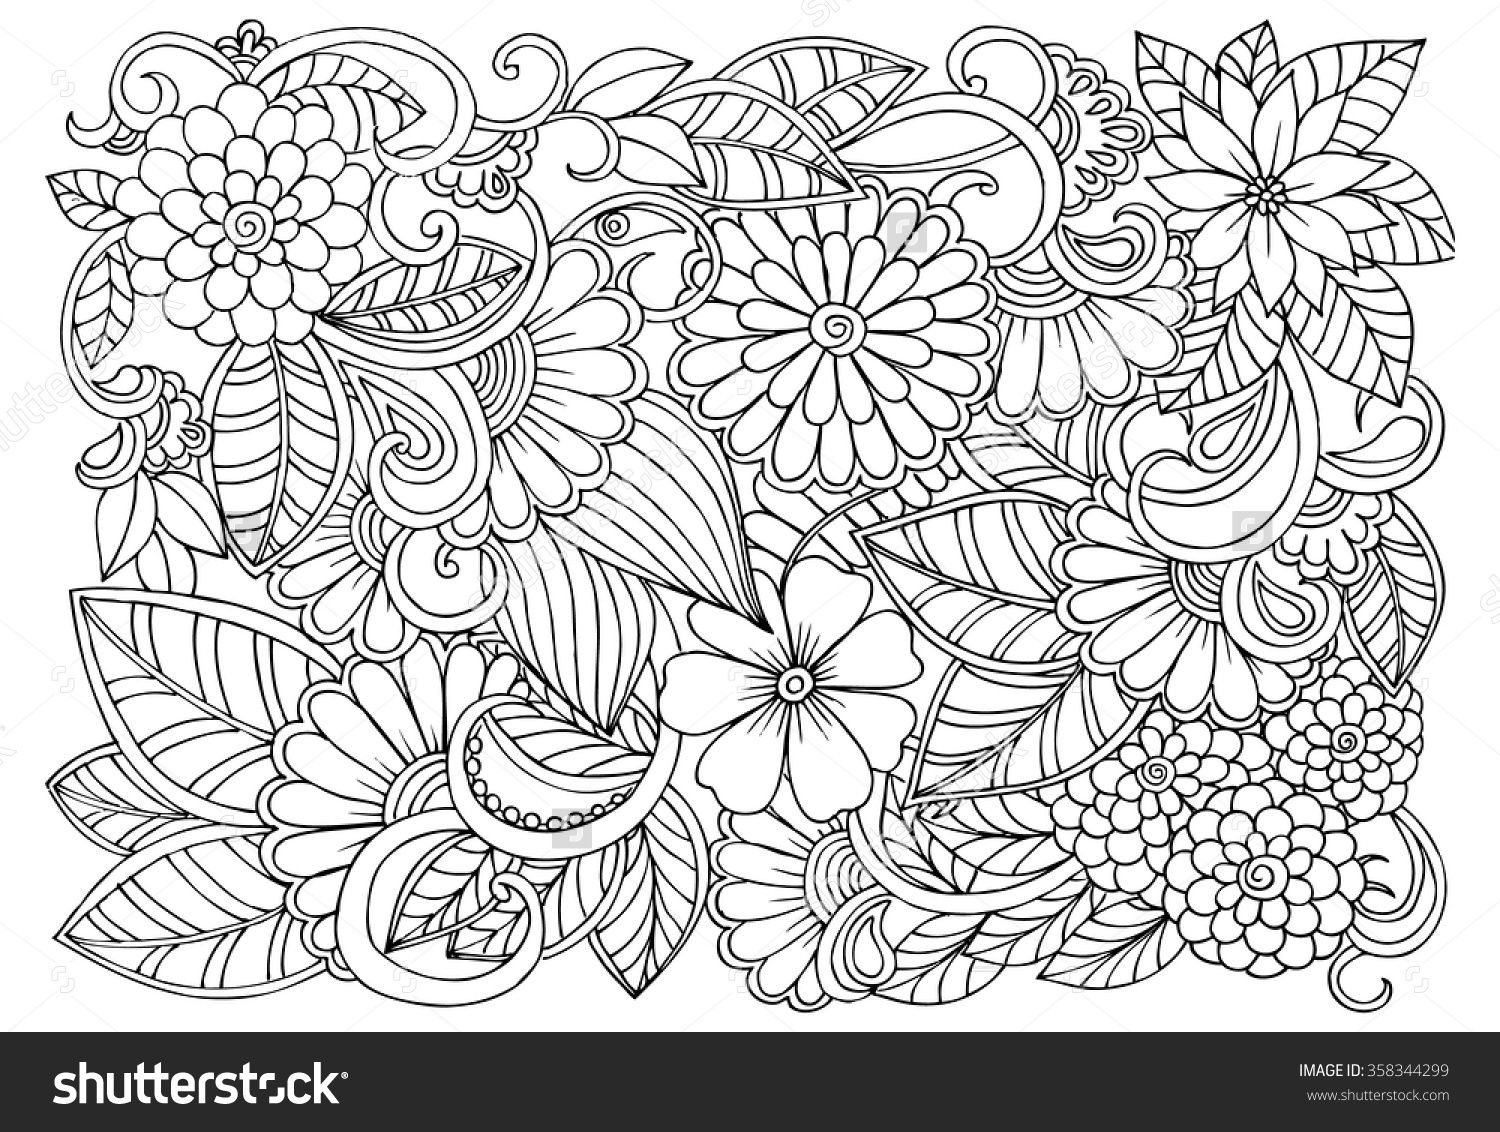 Coloring Pages Of Flower Designs With Flower Designs Coloring Pages Doodle Floral Pattern In